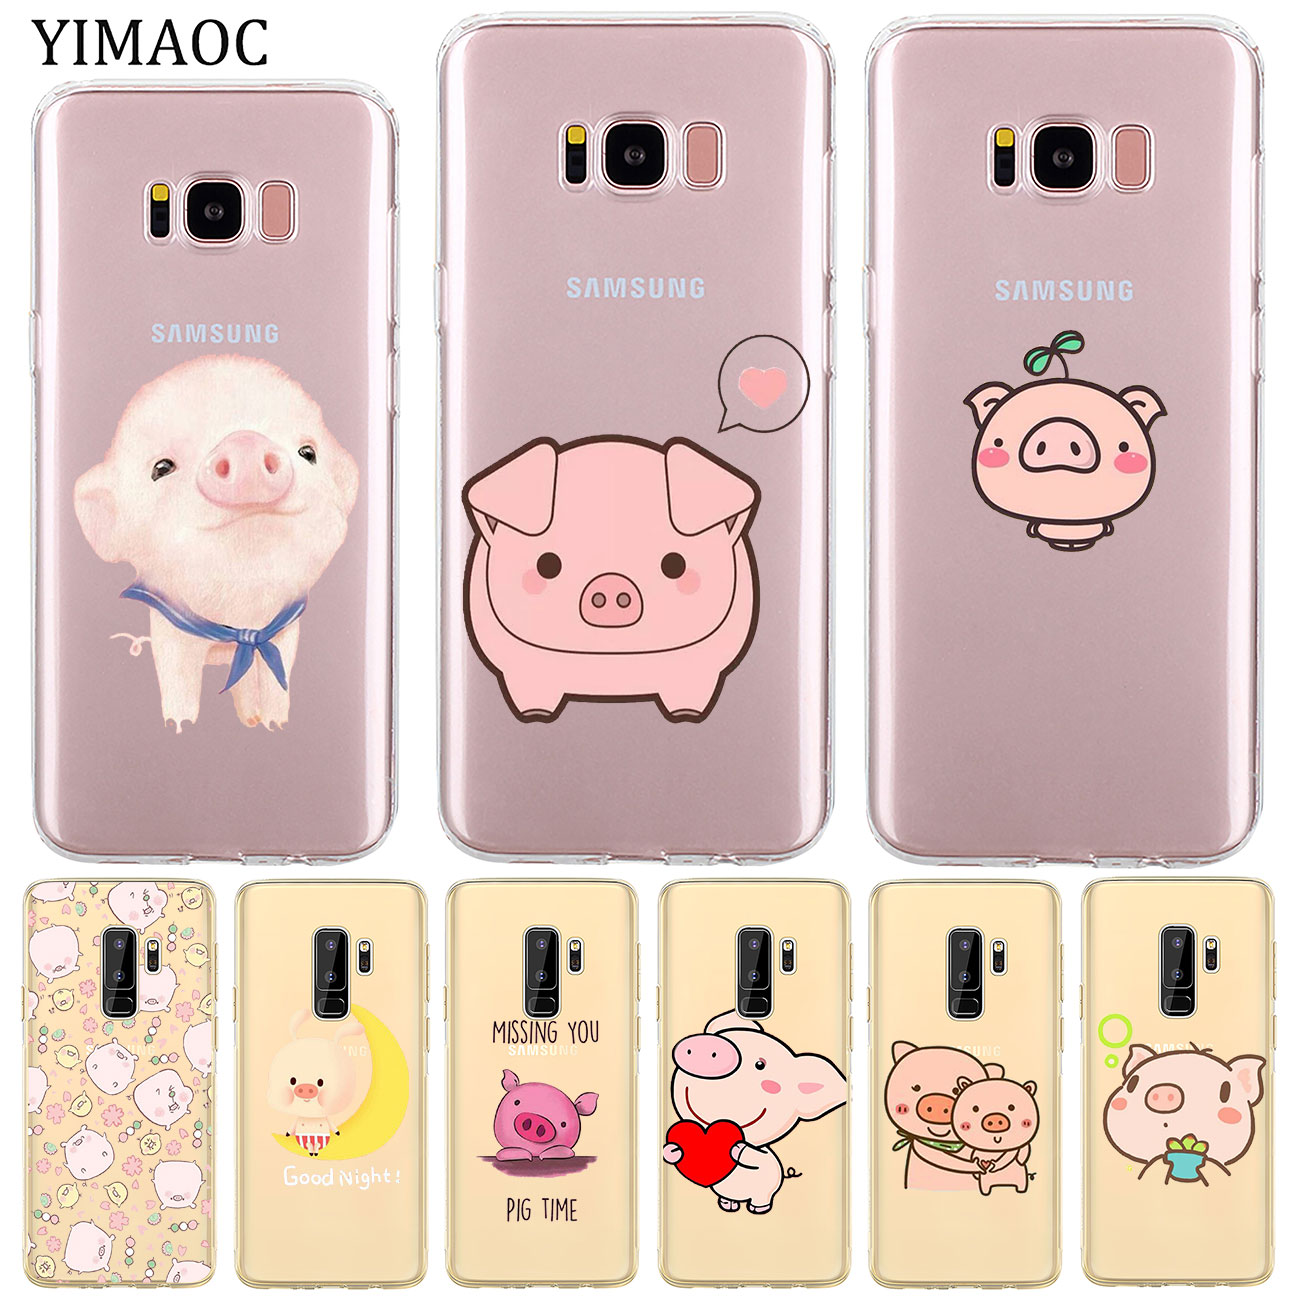 YIMAOC Piggy  cute pig Lovely Soft Silicone TPU Phone Shll Case for Samsung Galaxy S10e S10 S9 S8 No